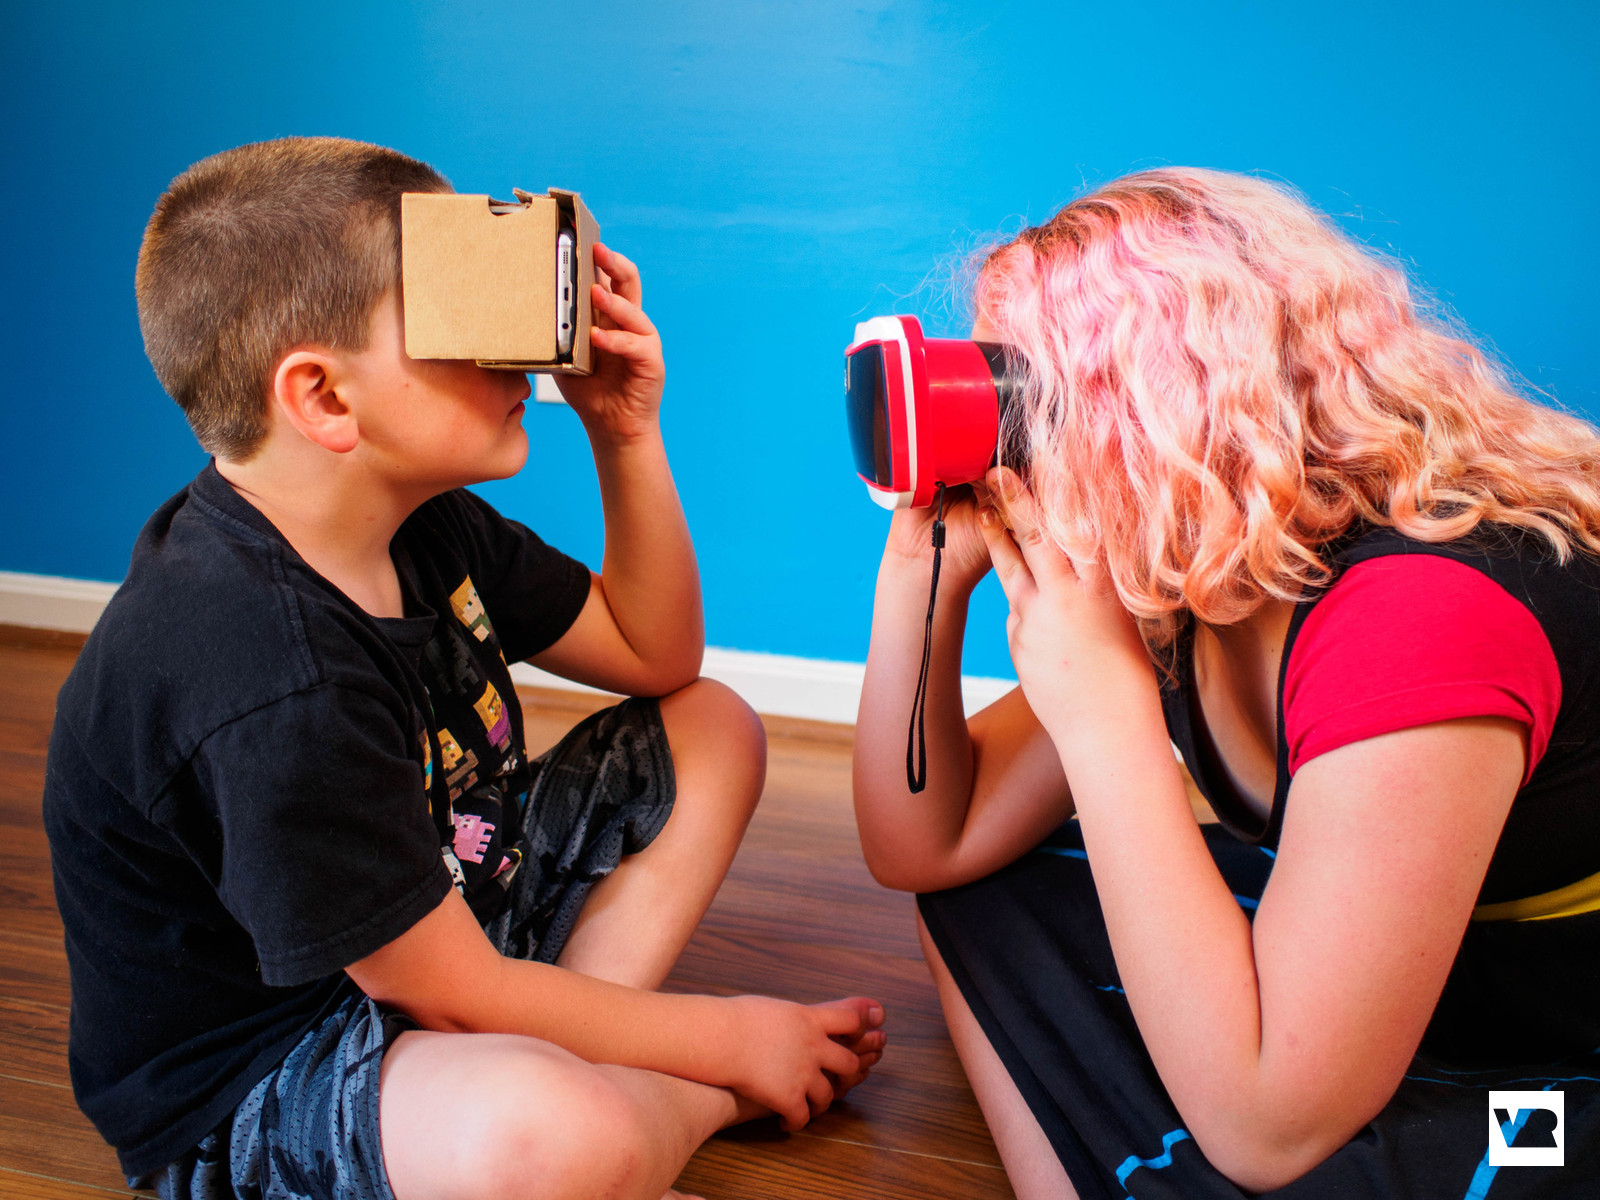 vr parents care